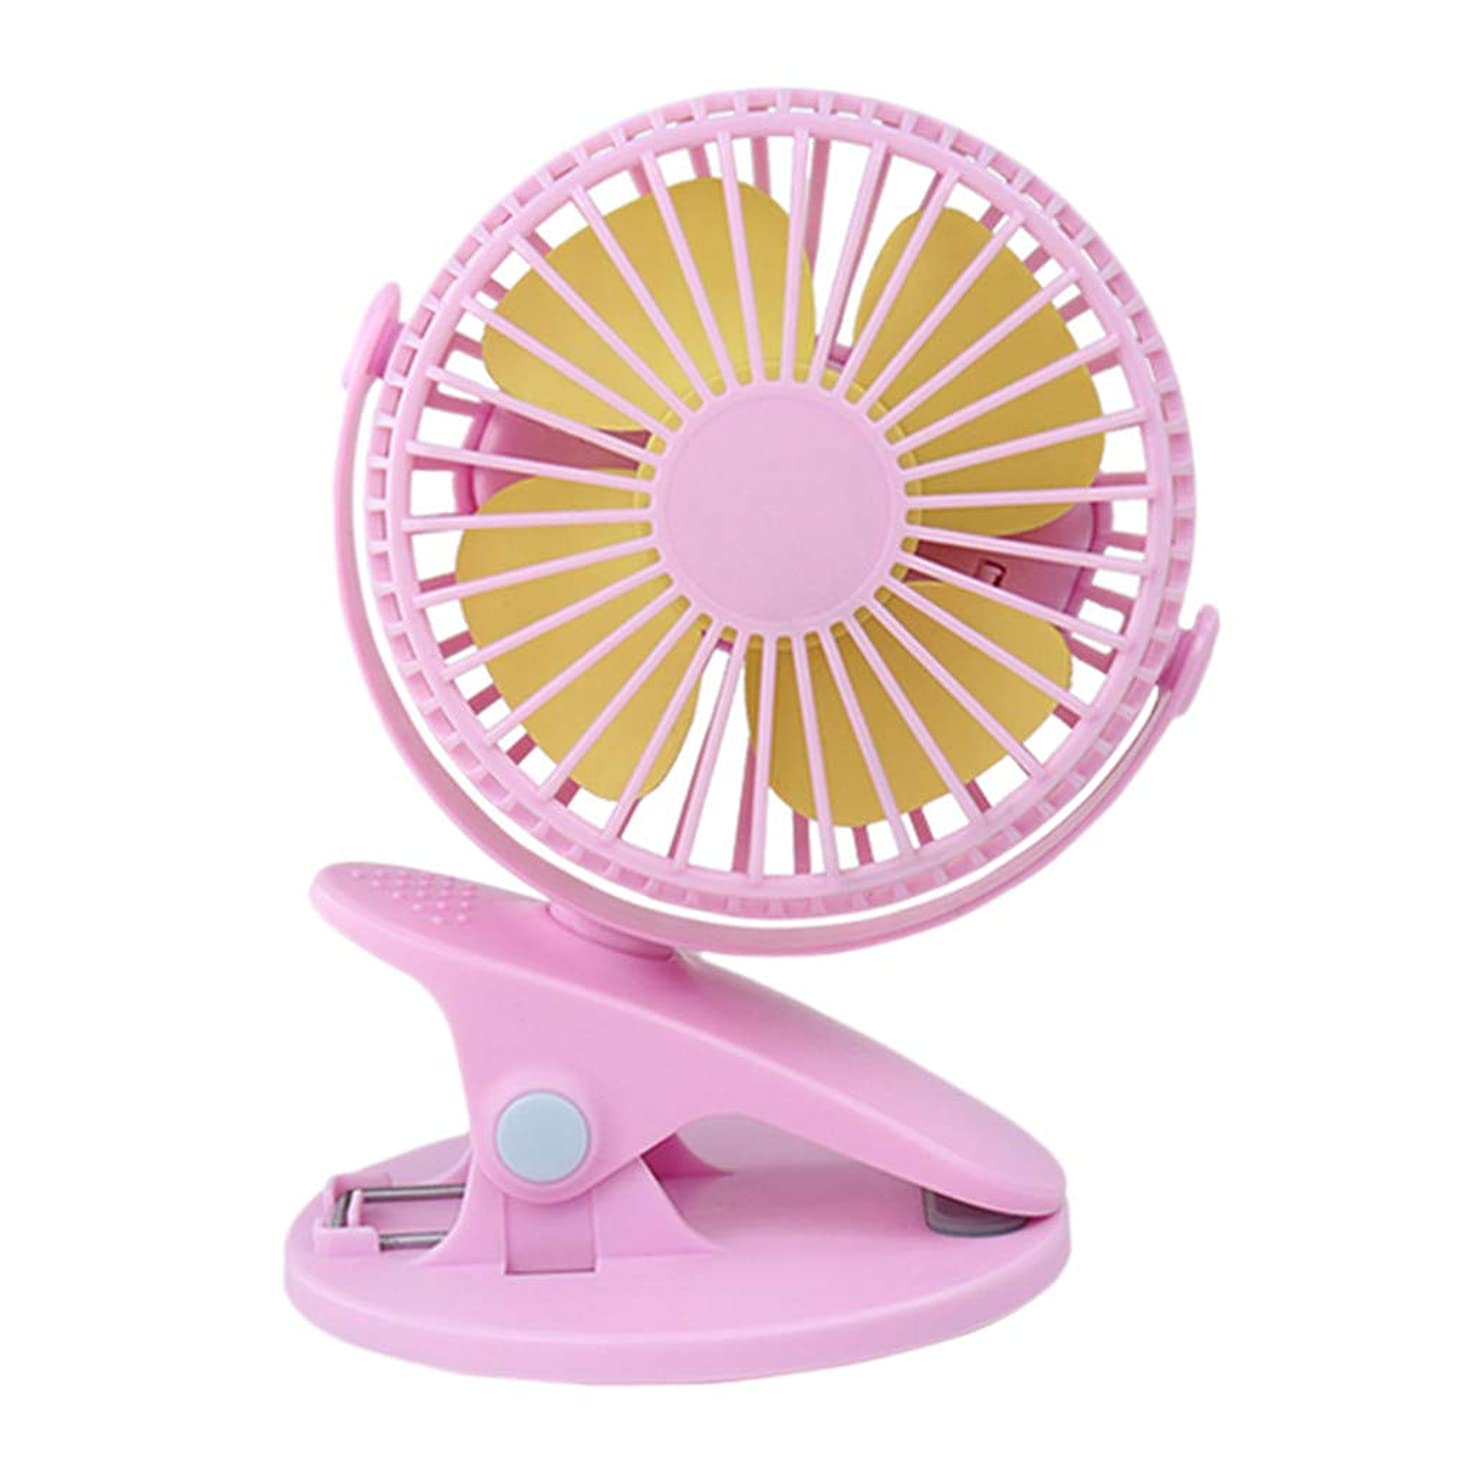 OrchidAmor 360° Portable Camping Fan Rechargeable USB Clip On Mini Desk Fan Pram Cot Car